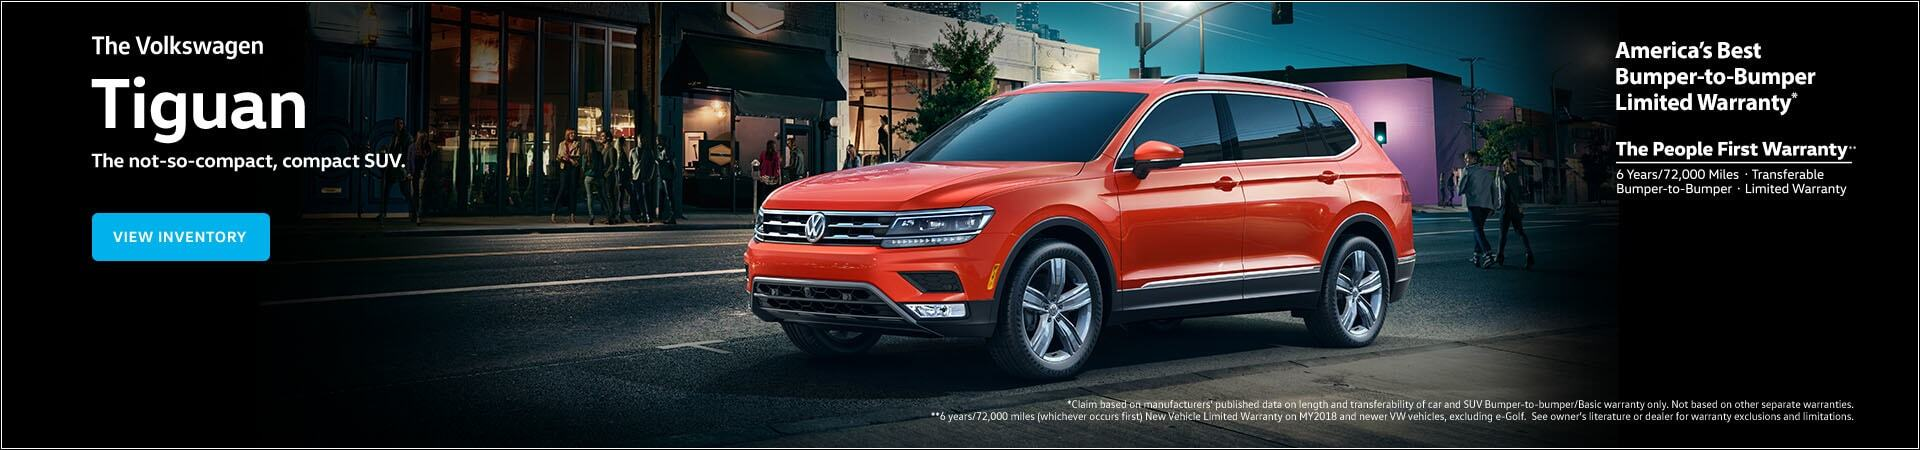 My Tiguan 2018 Cars.com